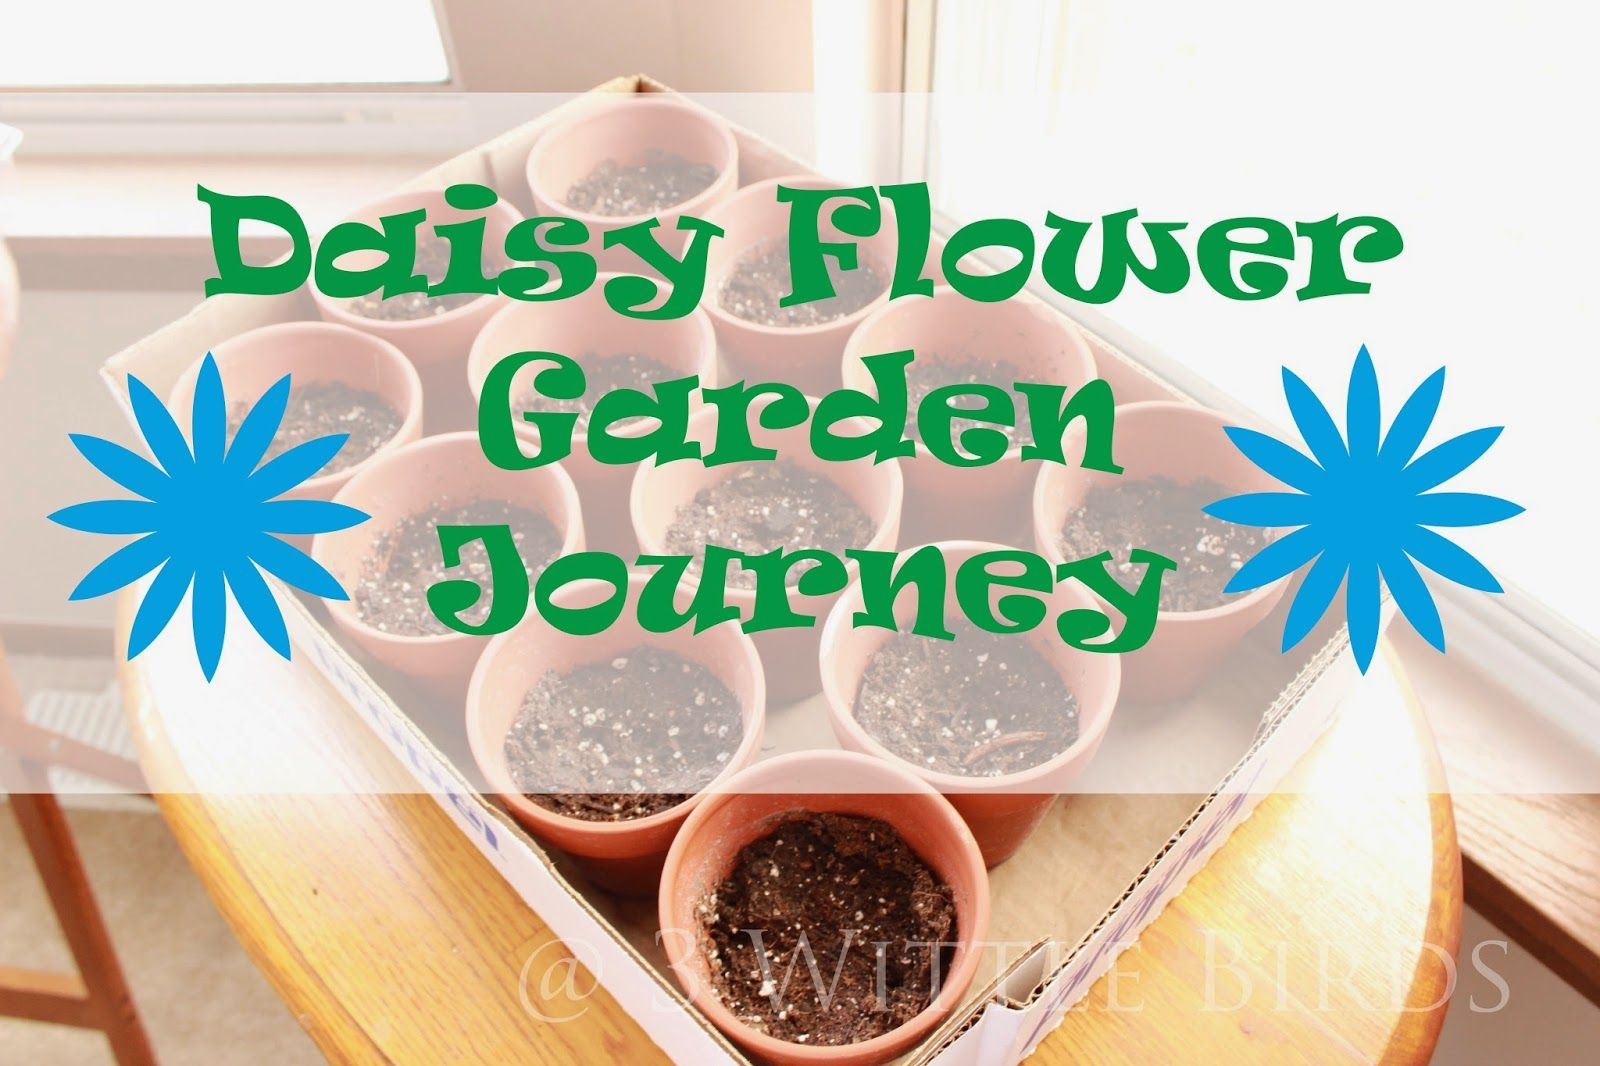 Daisy flower garden journey session 1 flower gardens and girls daisy flower garden journey for girl scouts session 1 great ideas izmirmasajfo